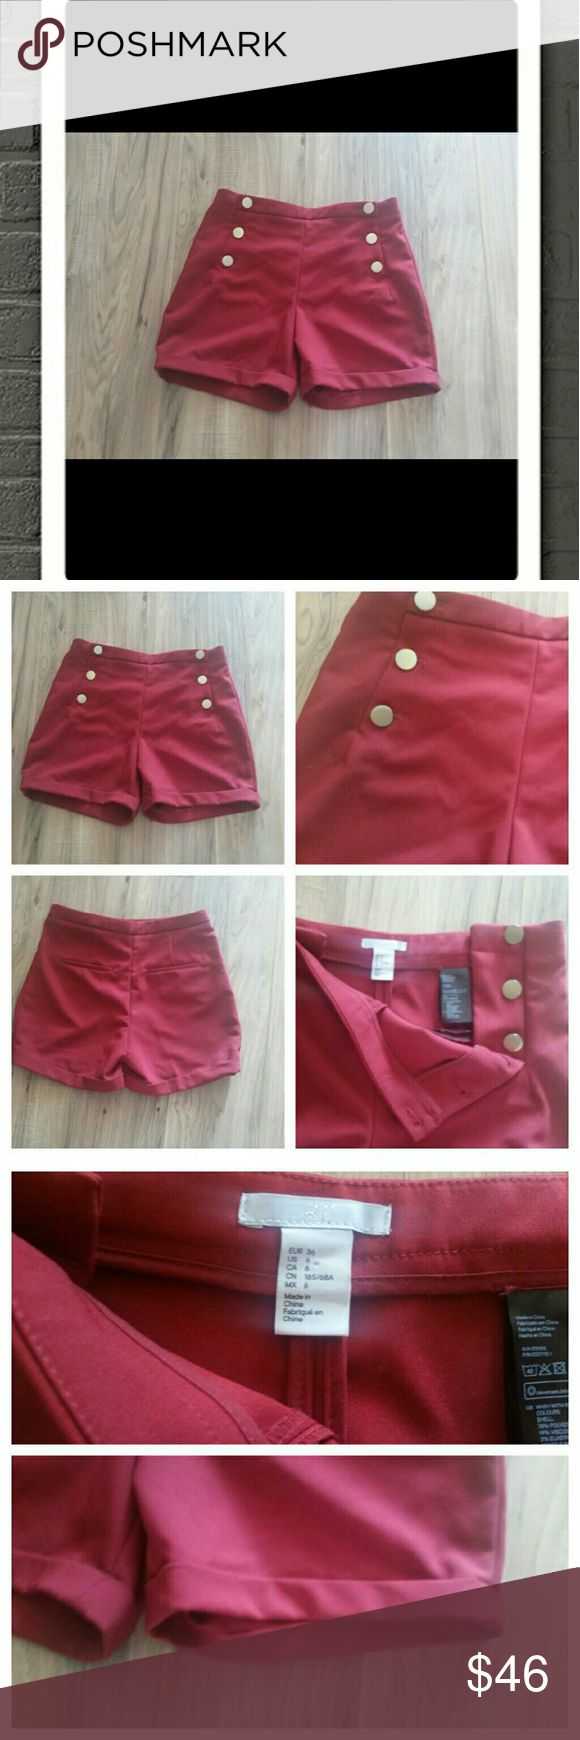 H&M red shorts size 6 Red delicious apple red H&M bandleader shorts size 6.  These shorts remind me of Gwen Stefani. Great condition. Short 78% polyester 19% viscose 3% elastane. Machine washable. H&M Shorts